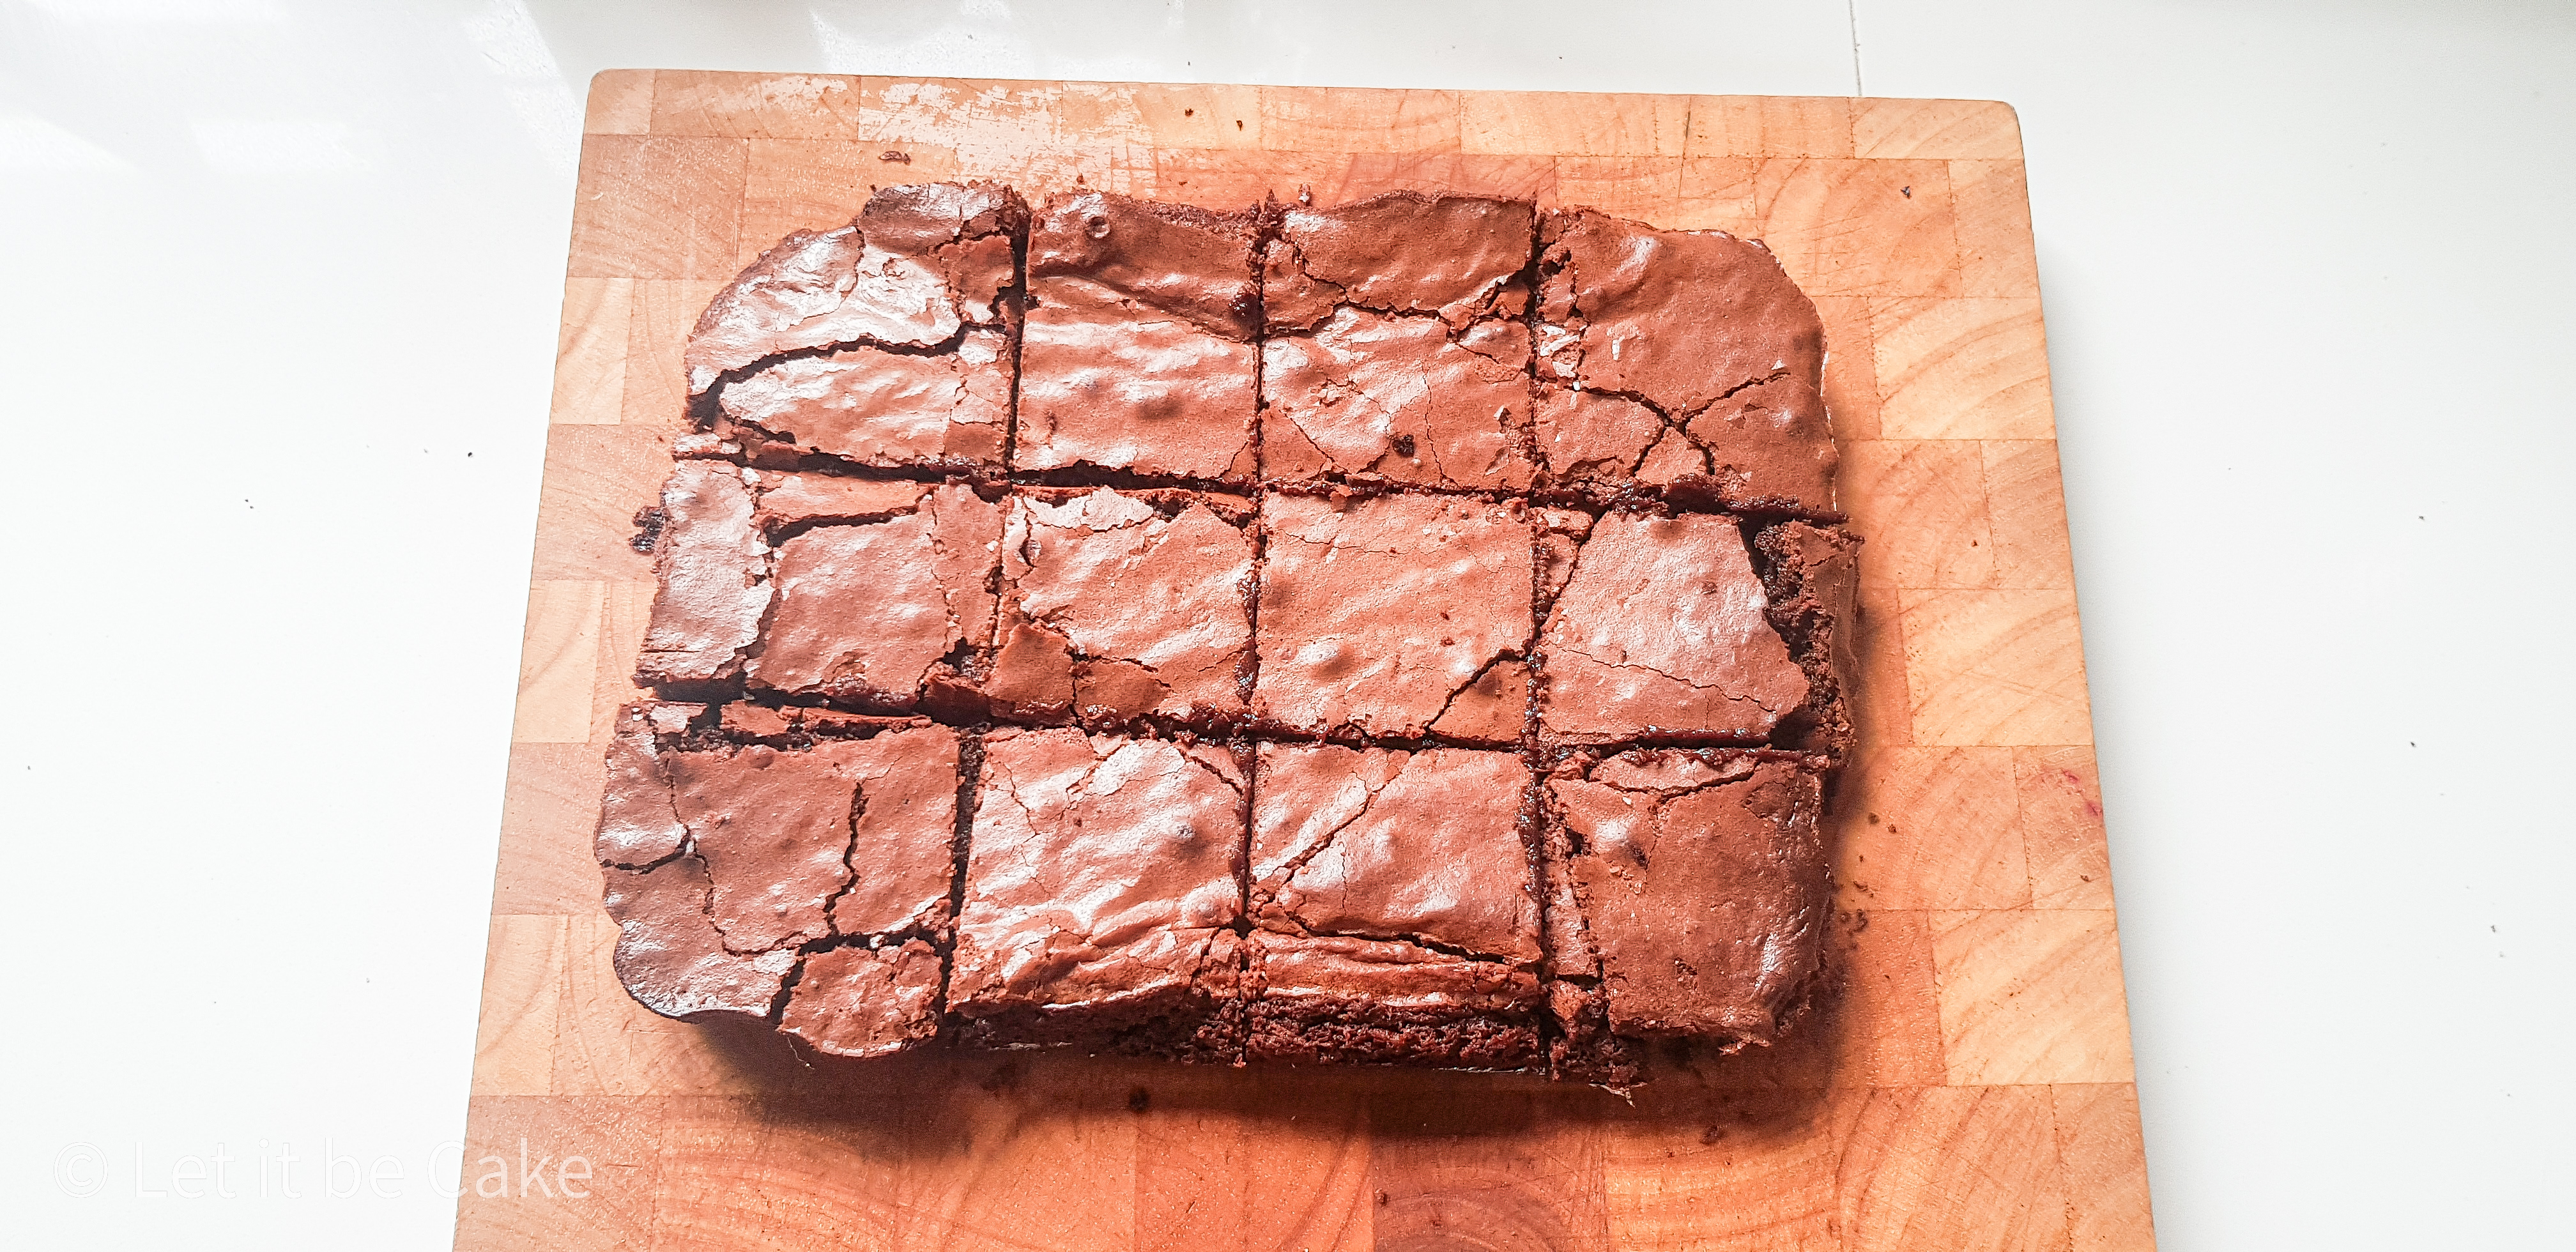 Postal box of brownies